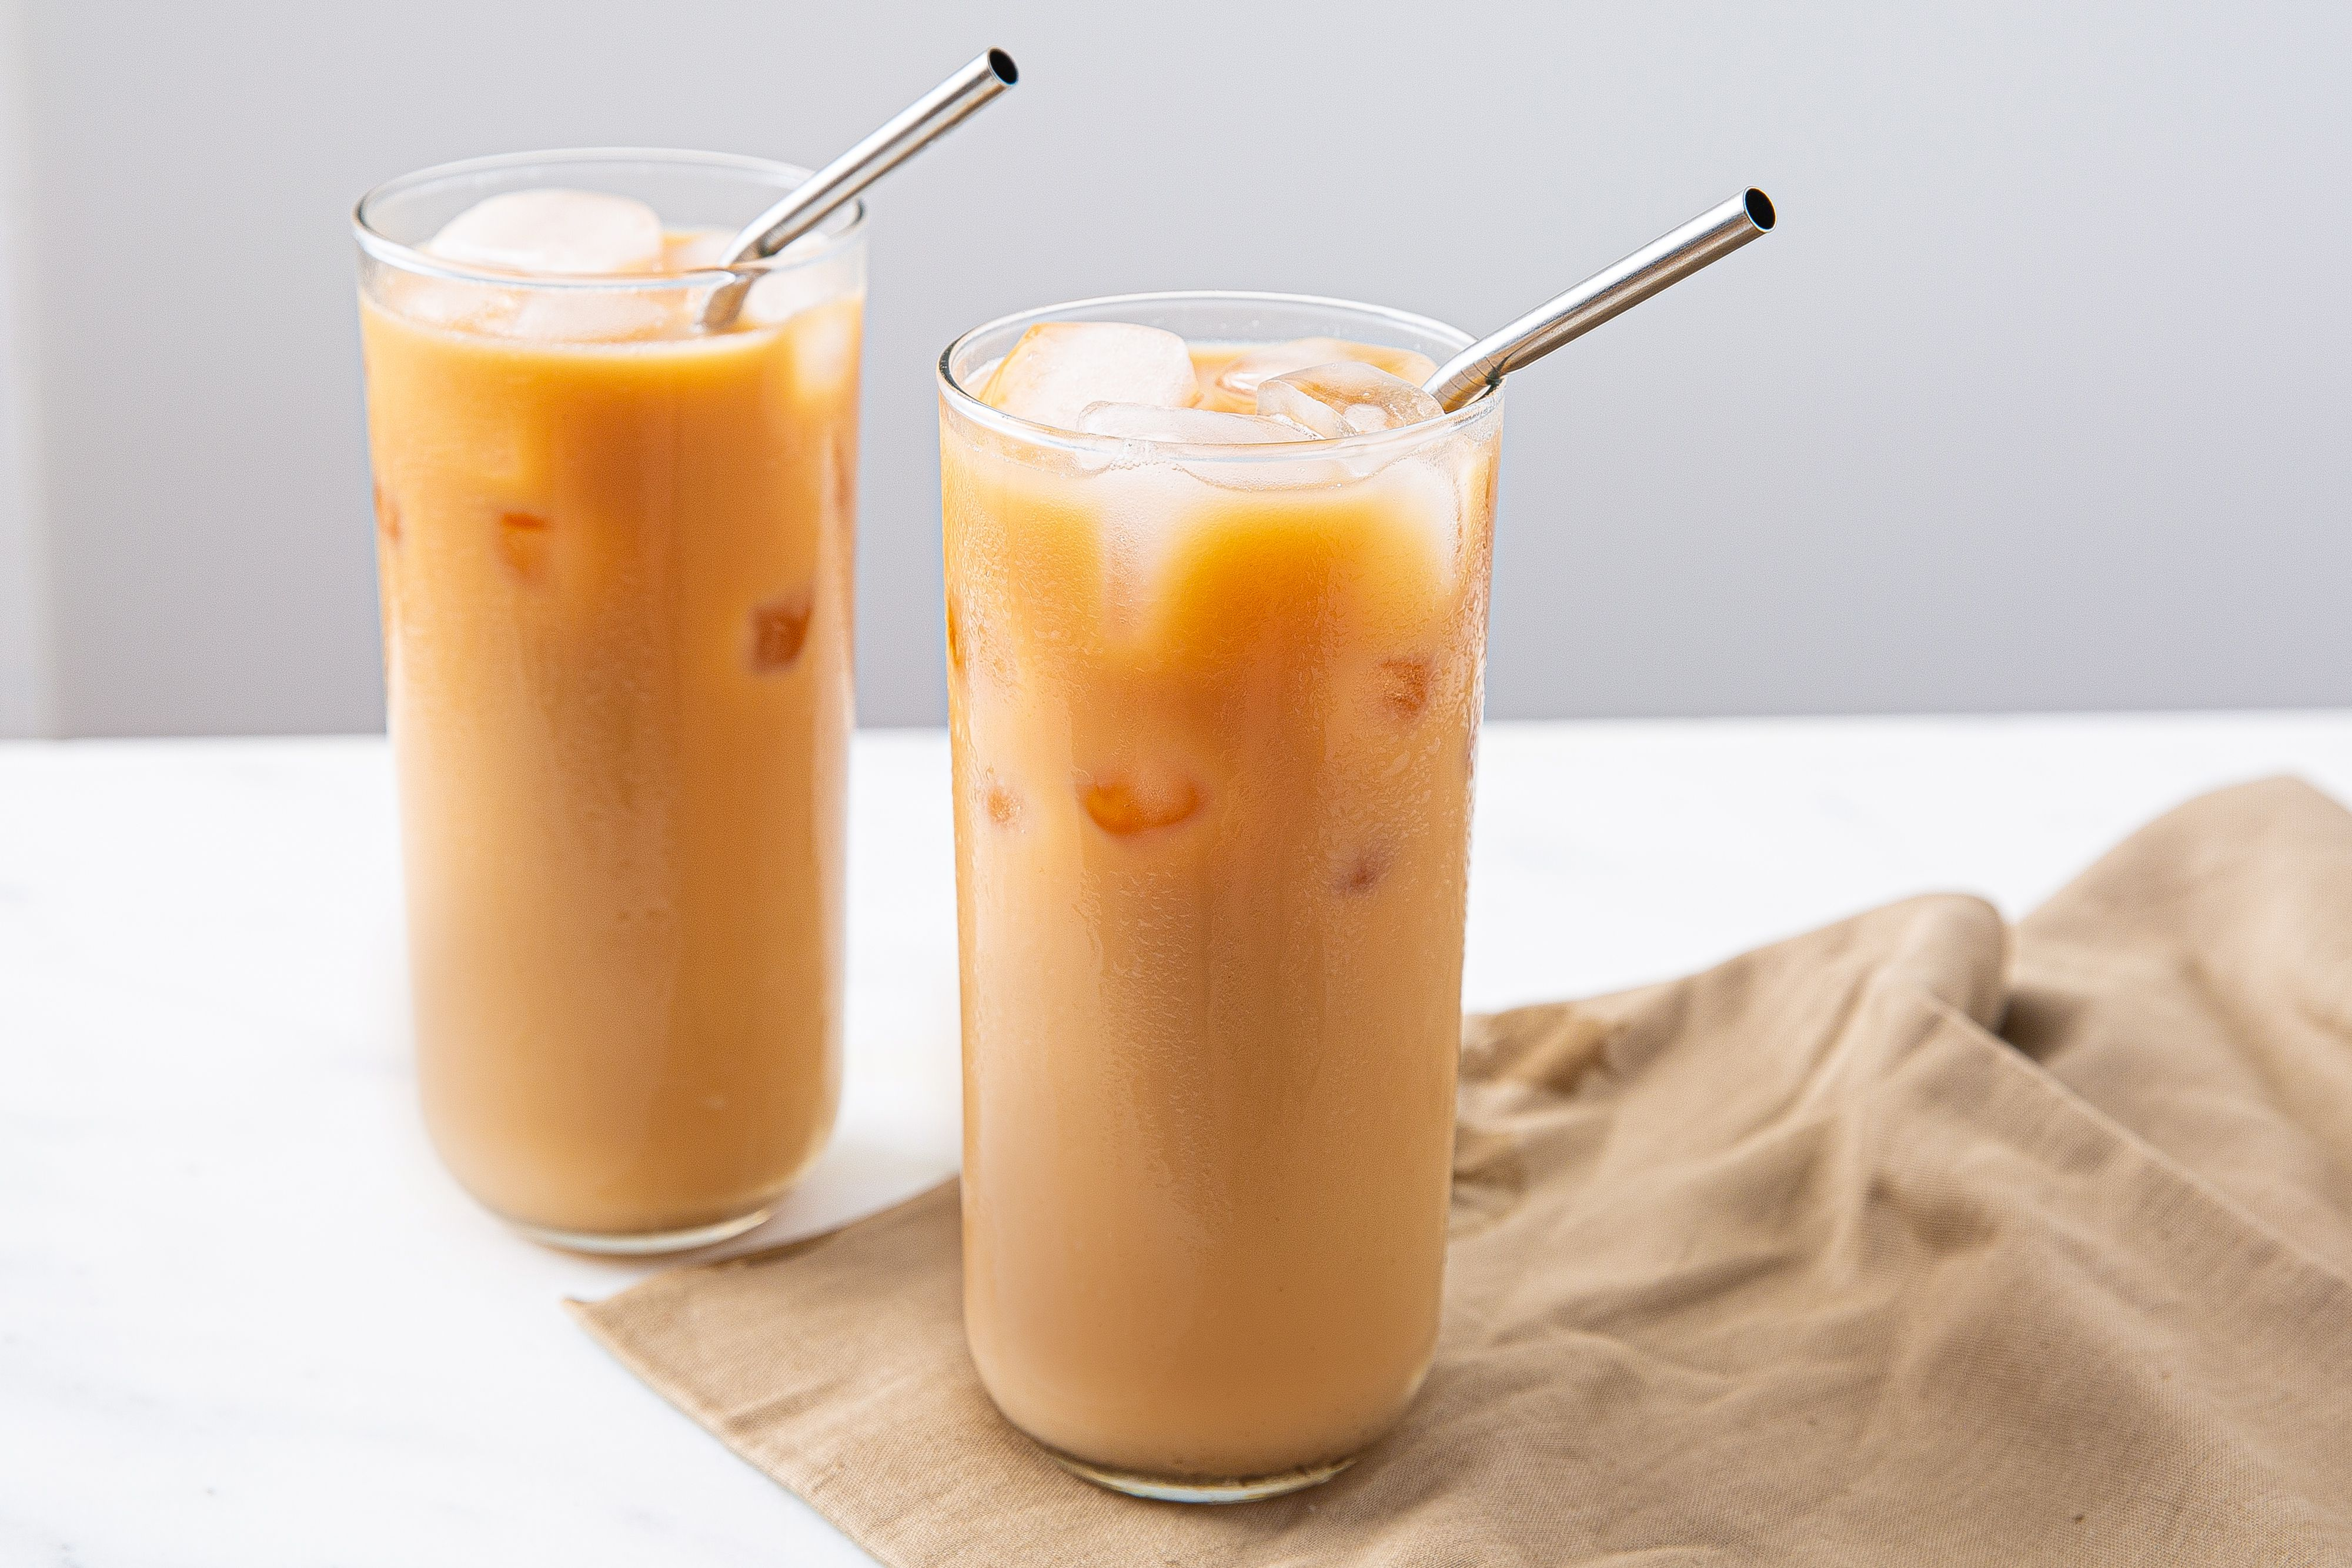 How to Make Thai Iced Tea From Scratch